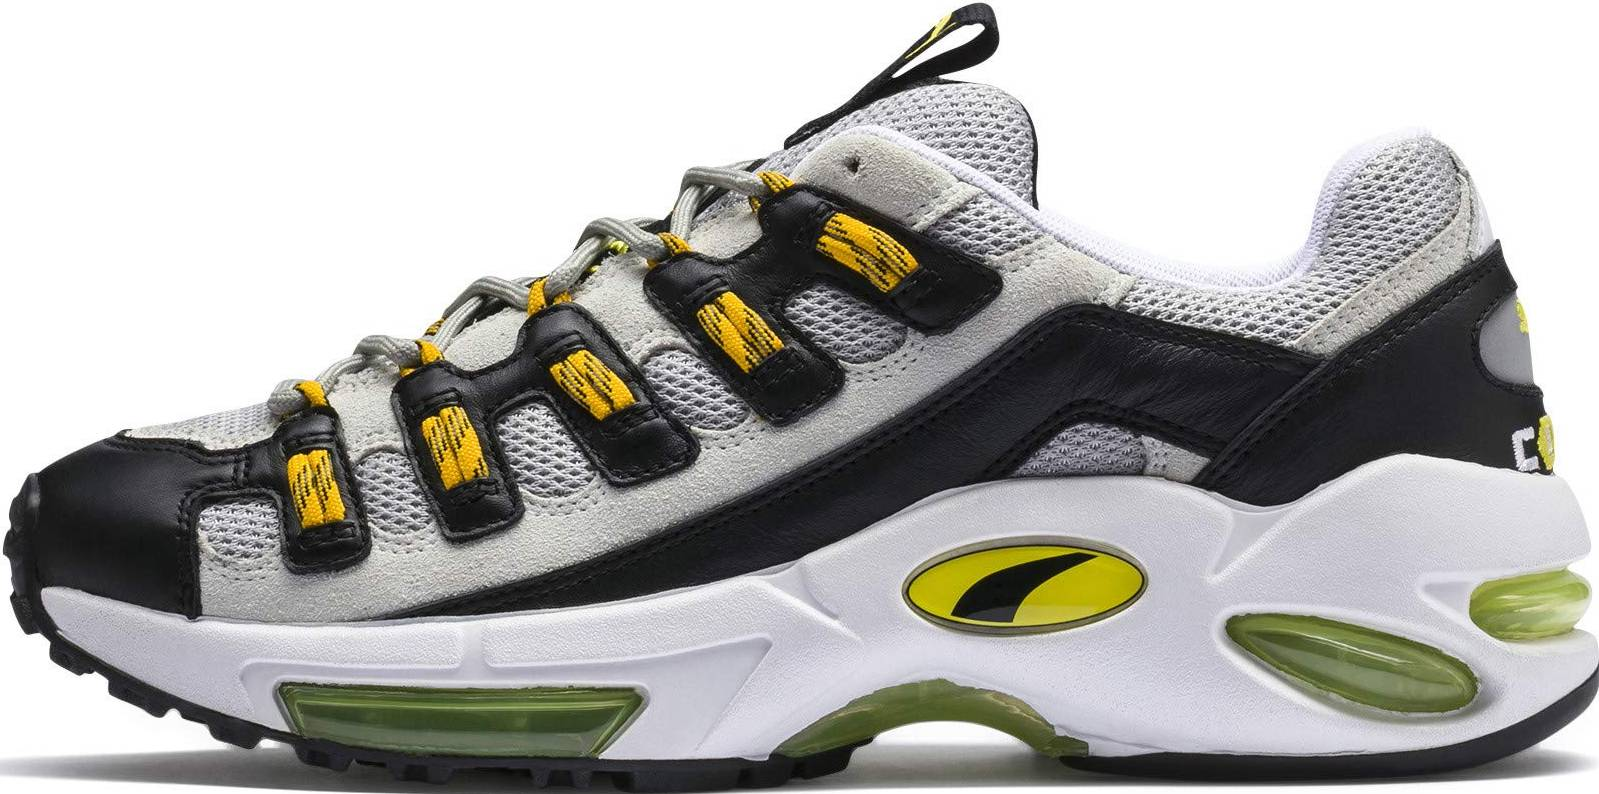 Only $39 + Review of Puma CELL Endura